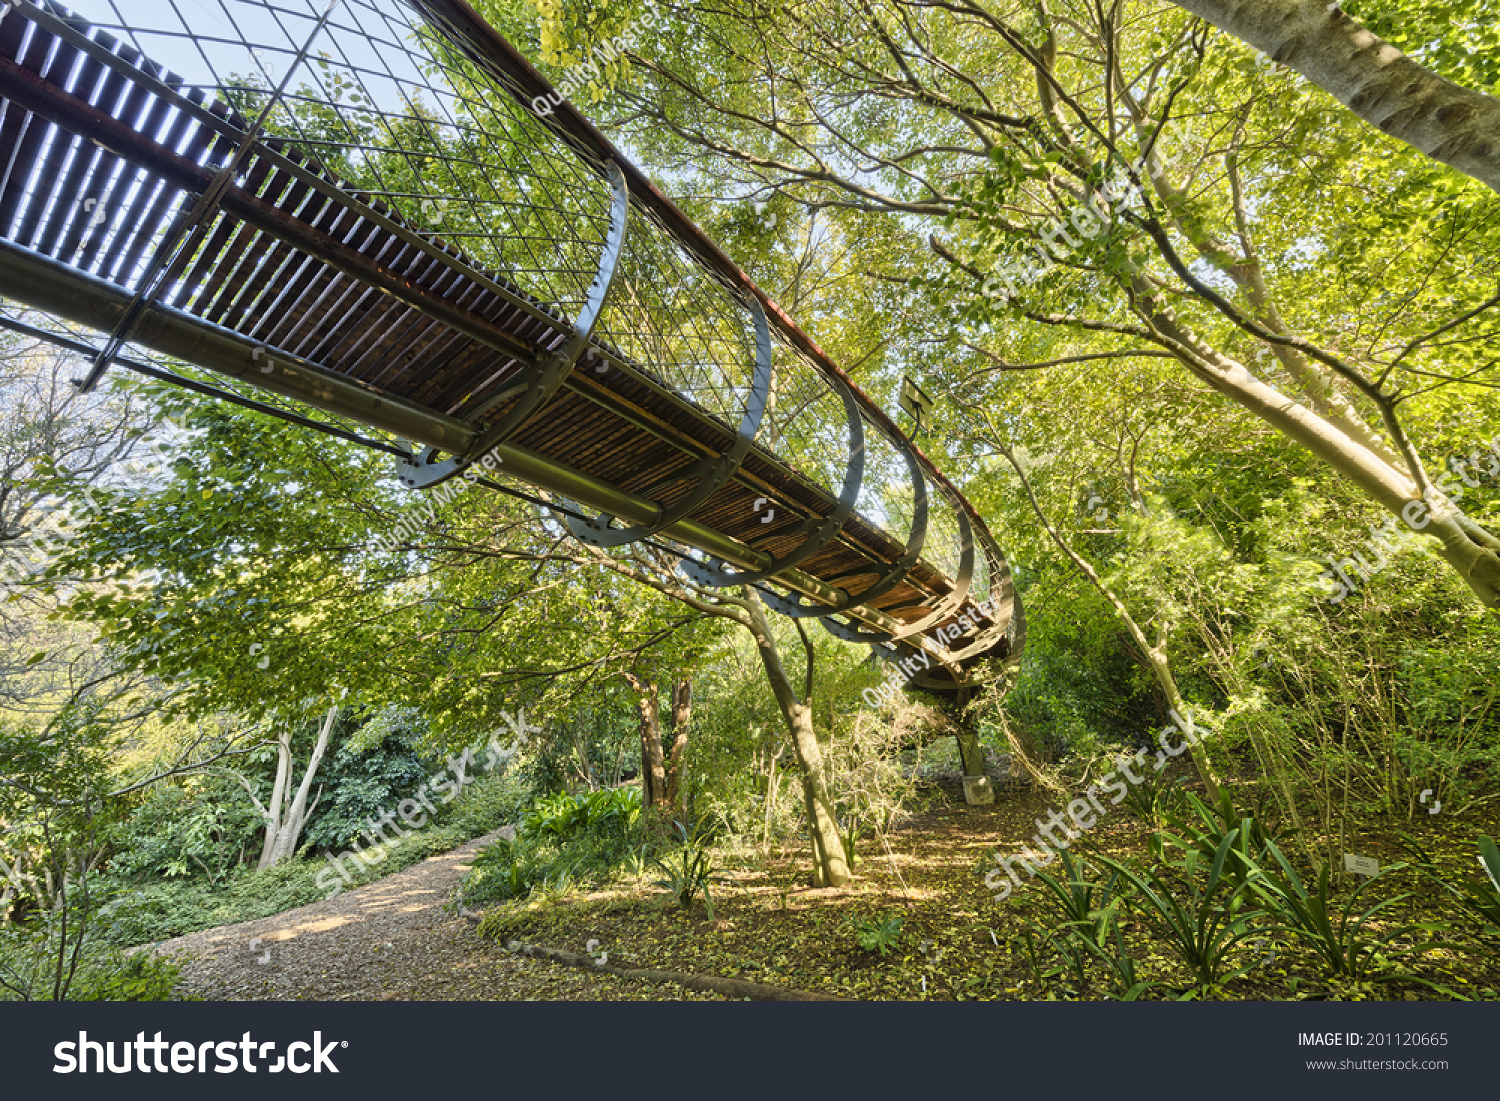 Kirstenbosch National Botanical Garden is acclaimed as one of the great botanic gardens of the world & Kirstenbosch National Botanical Garden Acclaimed One Stock Photo ...